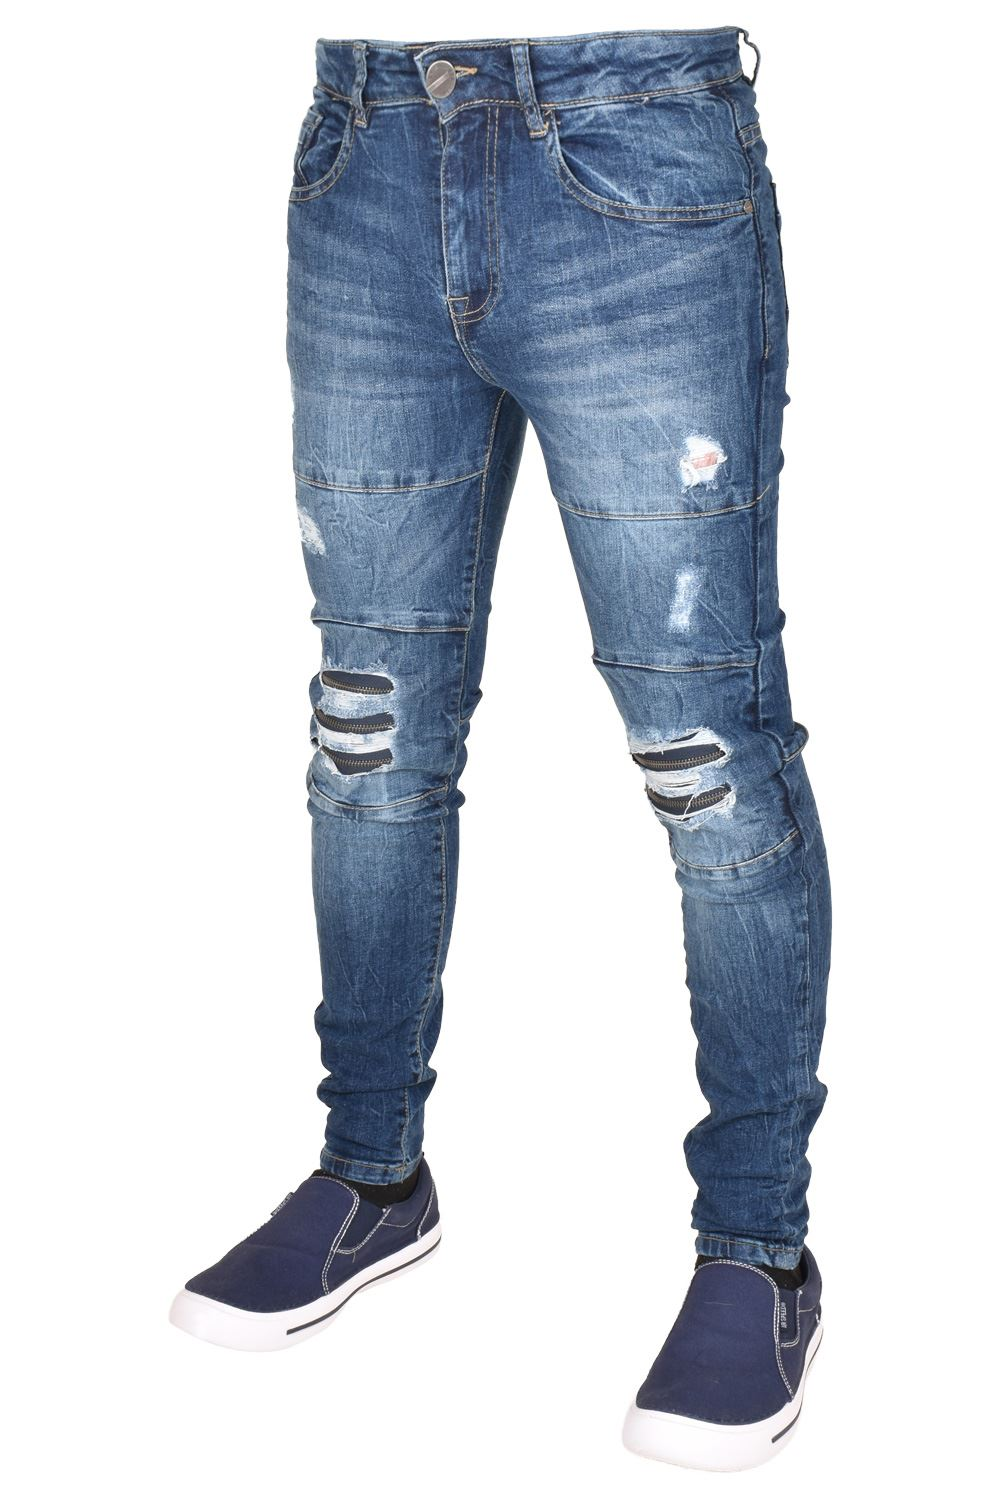 Enzo-Mens-Ripped-Jeans-Skinny-Slim-Fit-Denim-Pants-Casual-Trousers-Size-28-40 thumbnail 8